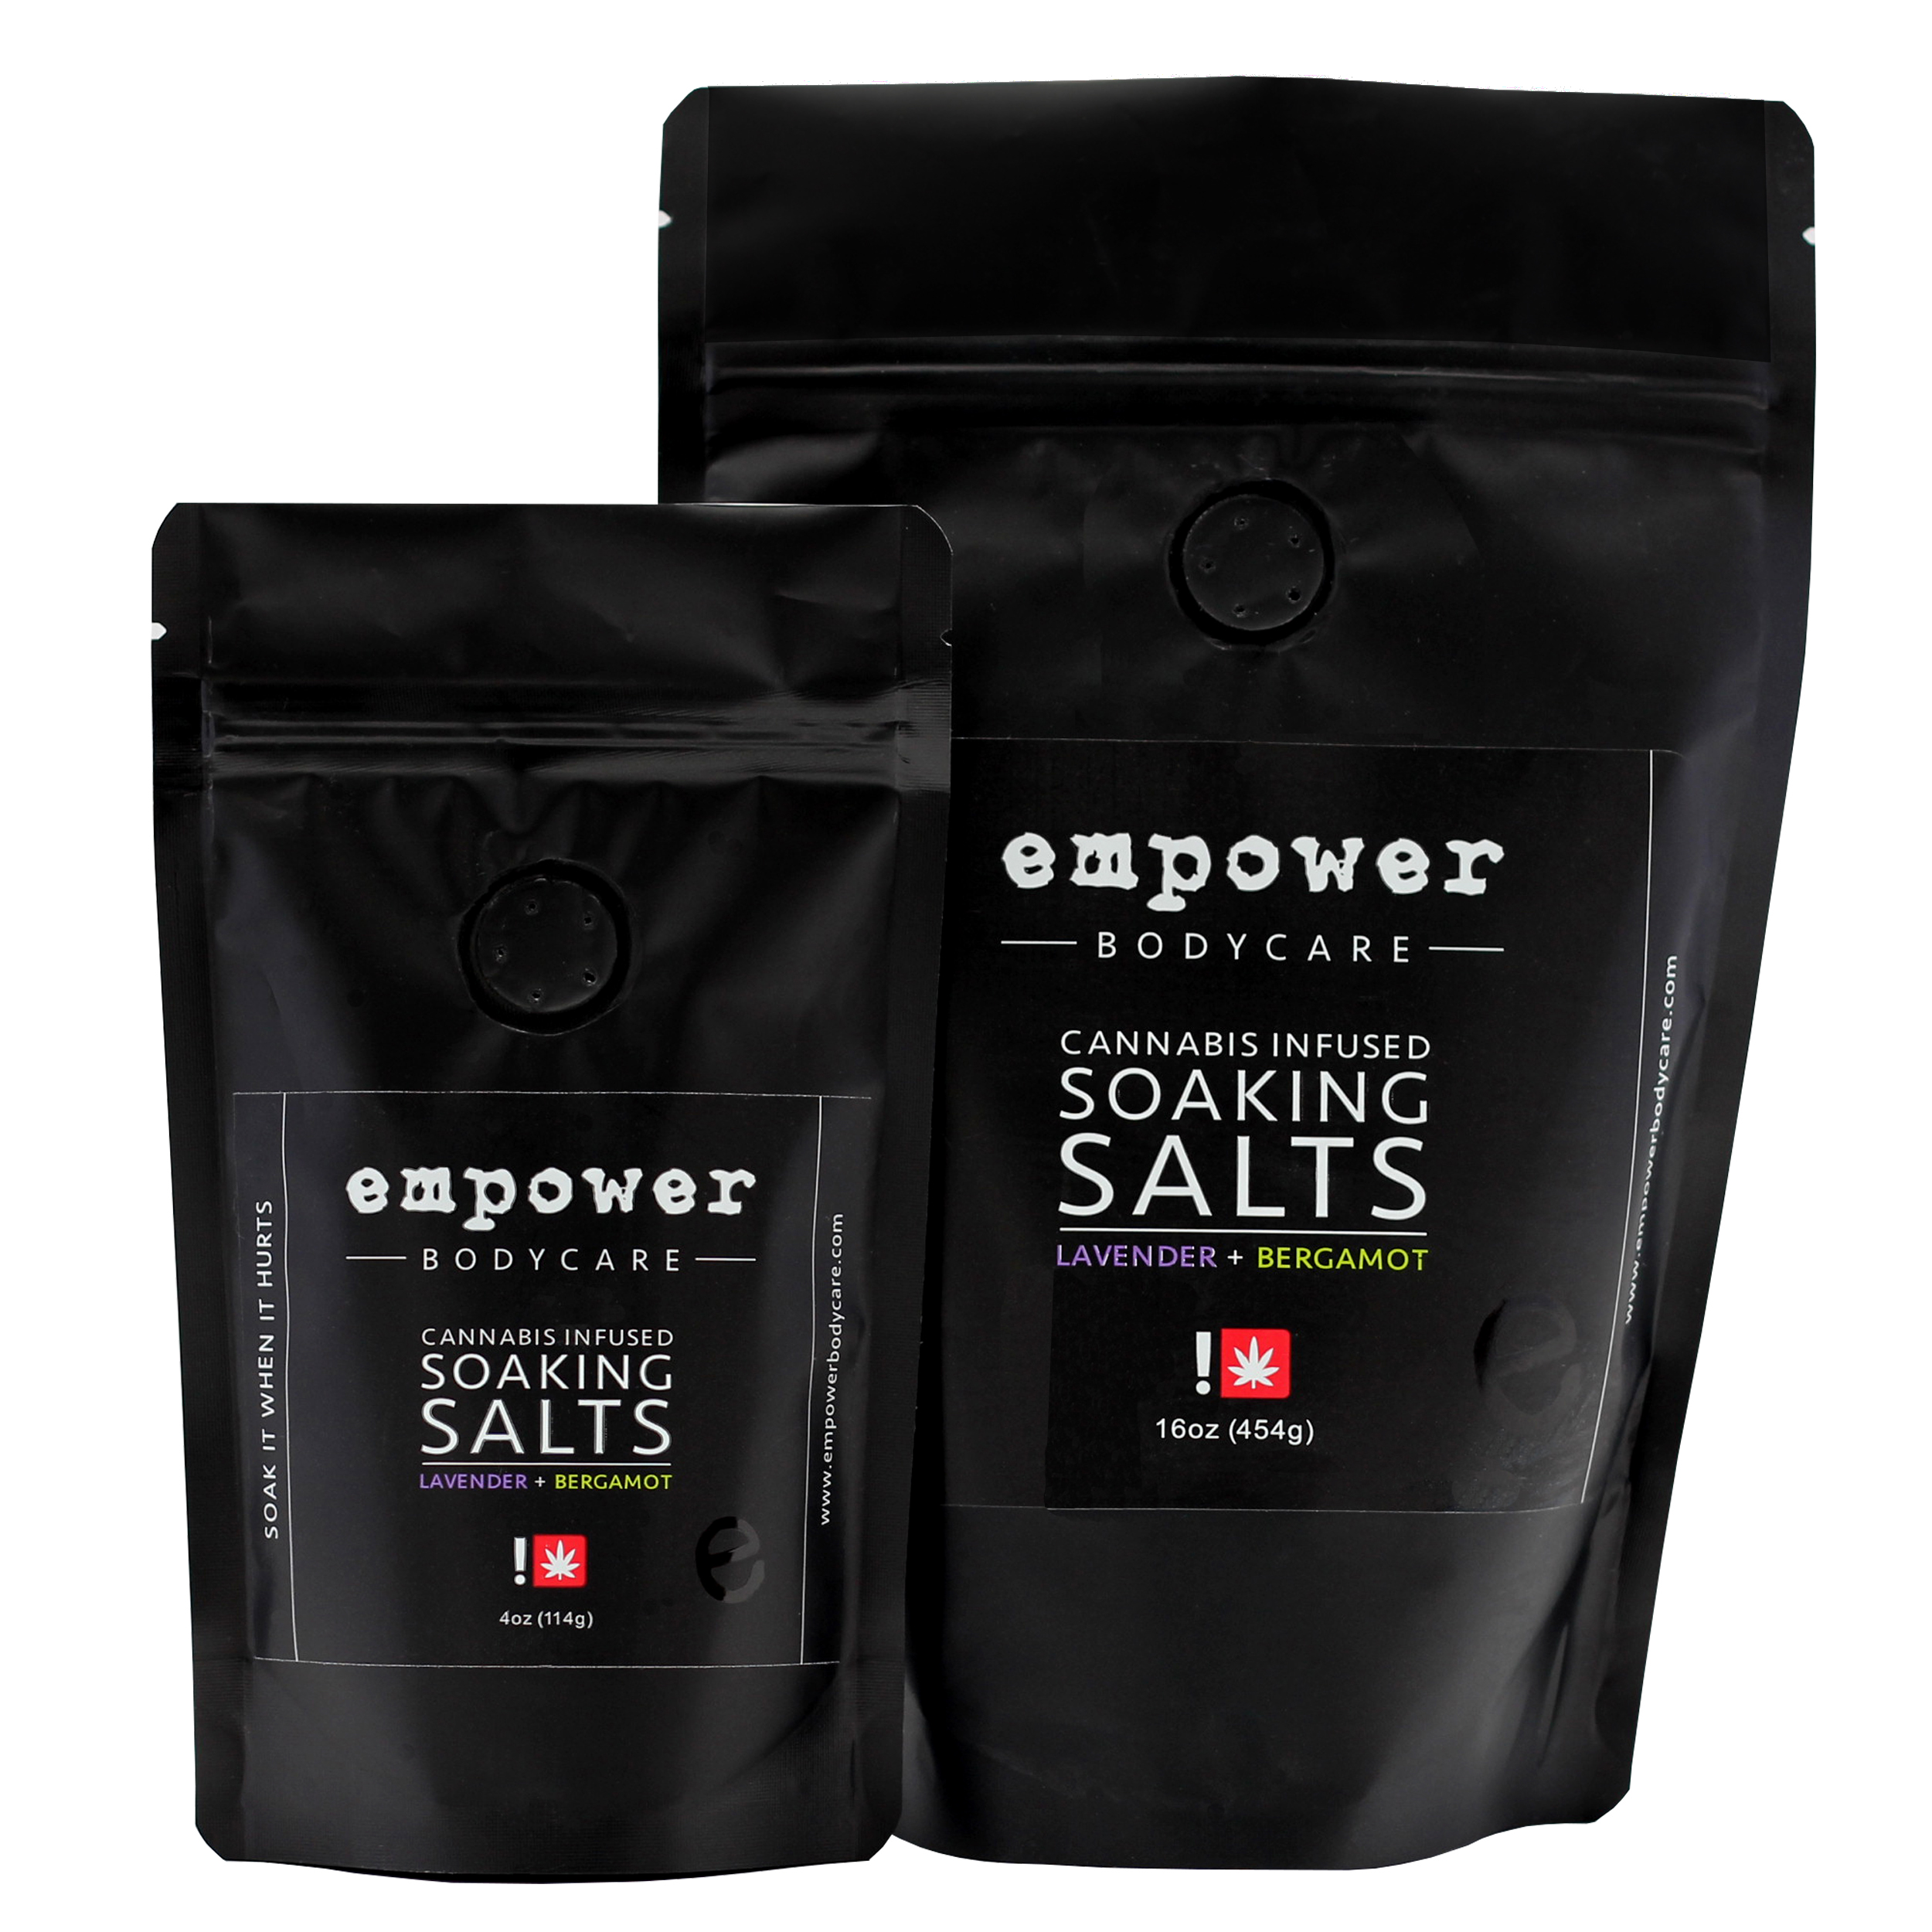 Empower Soaking Salts.jpg